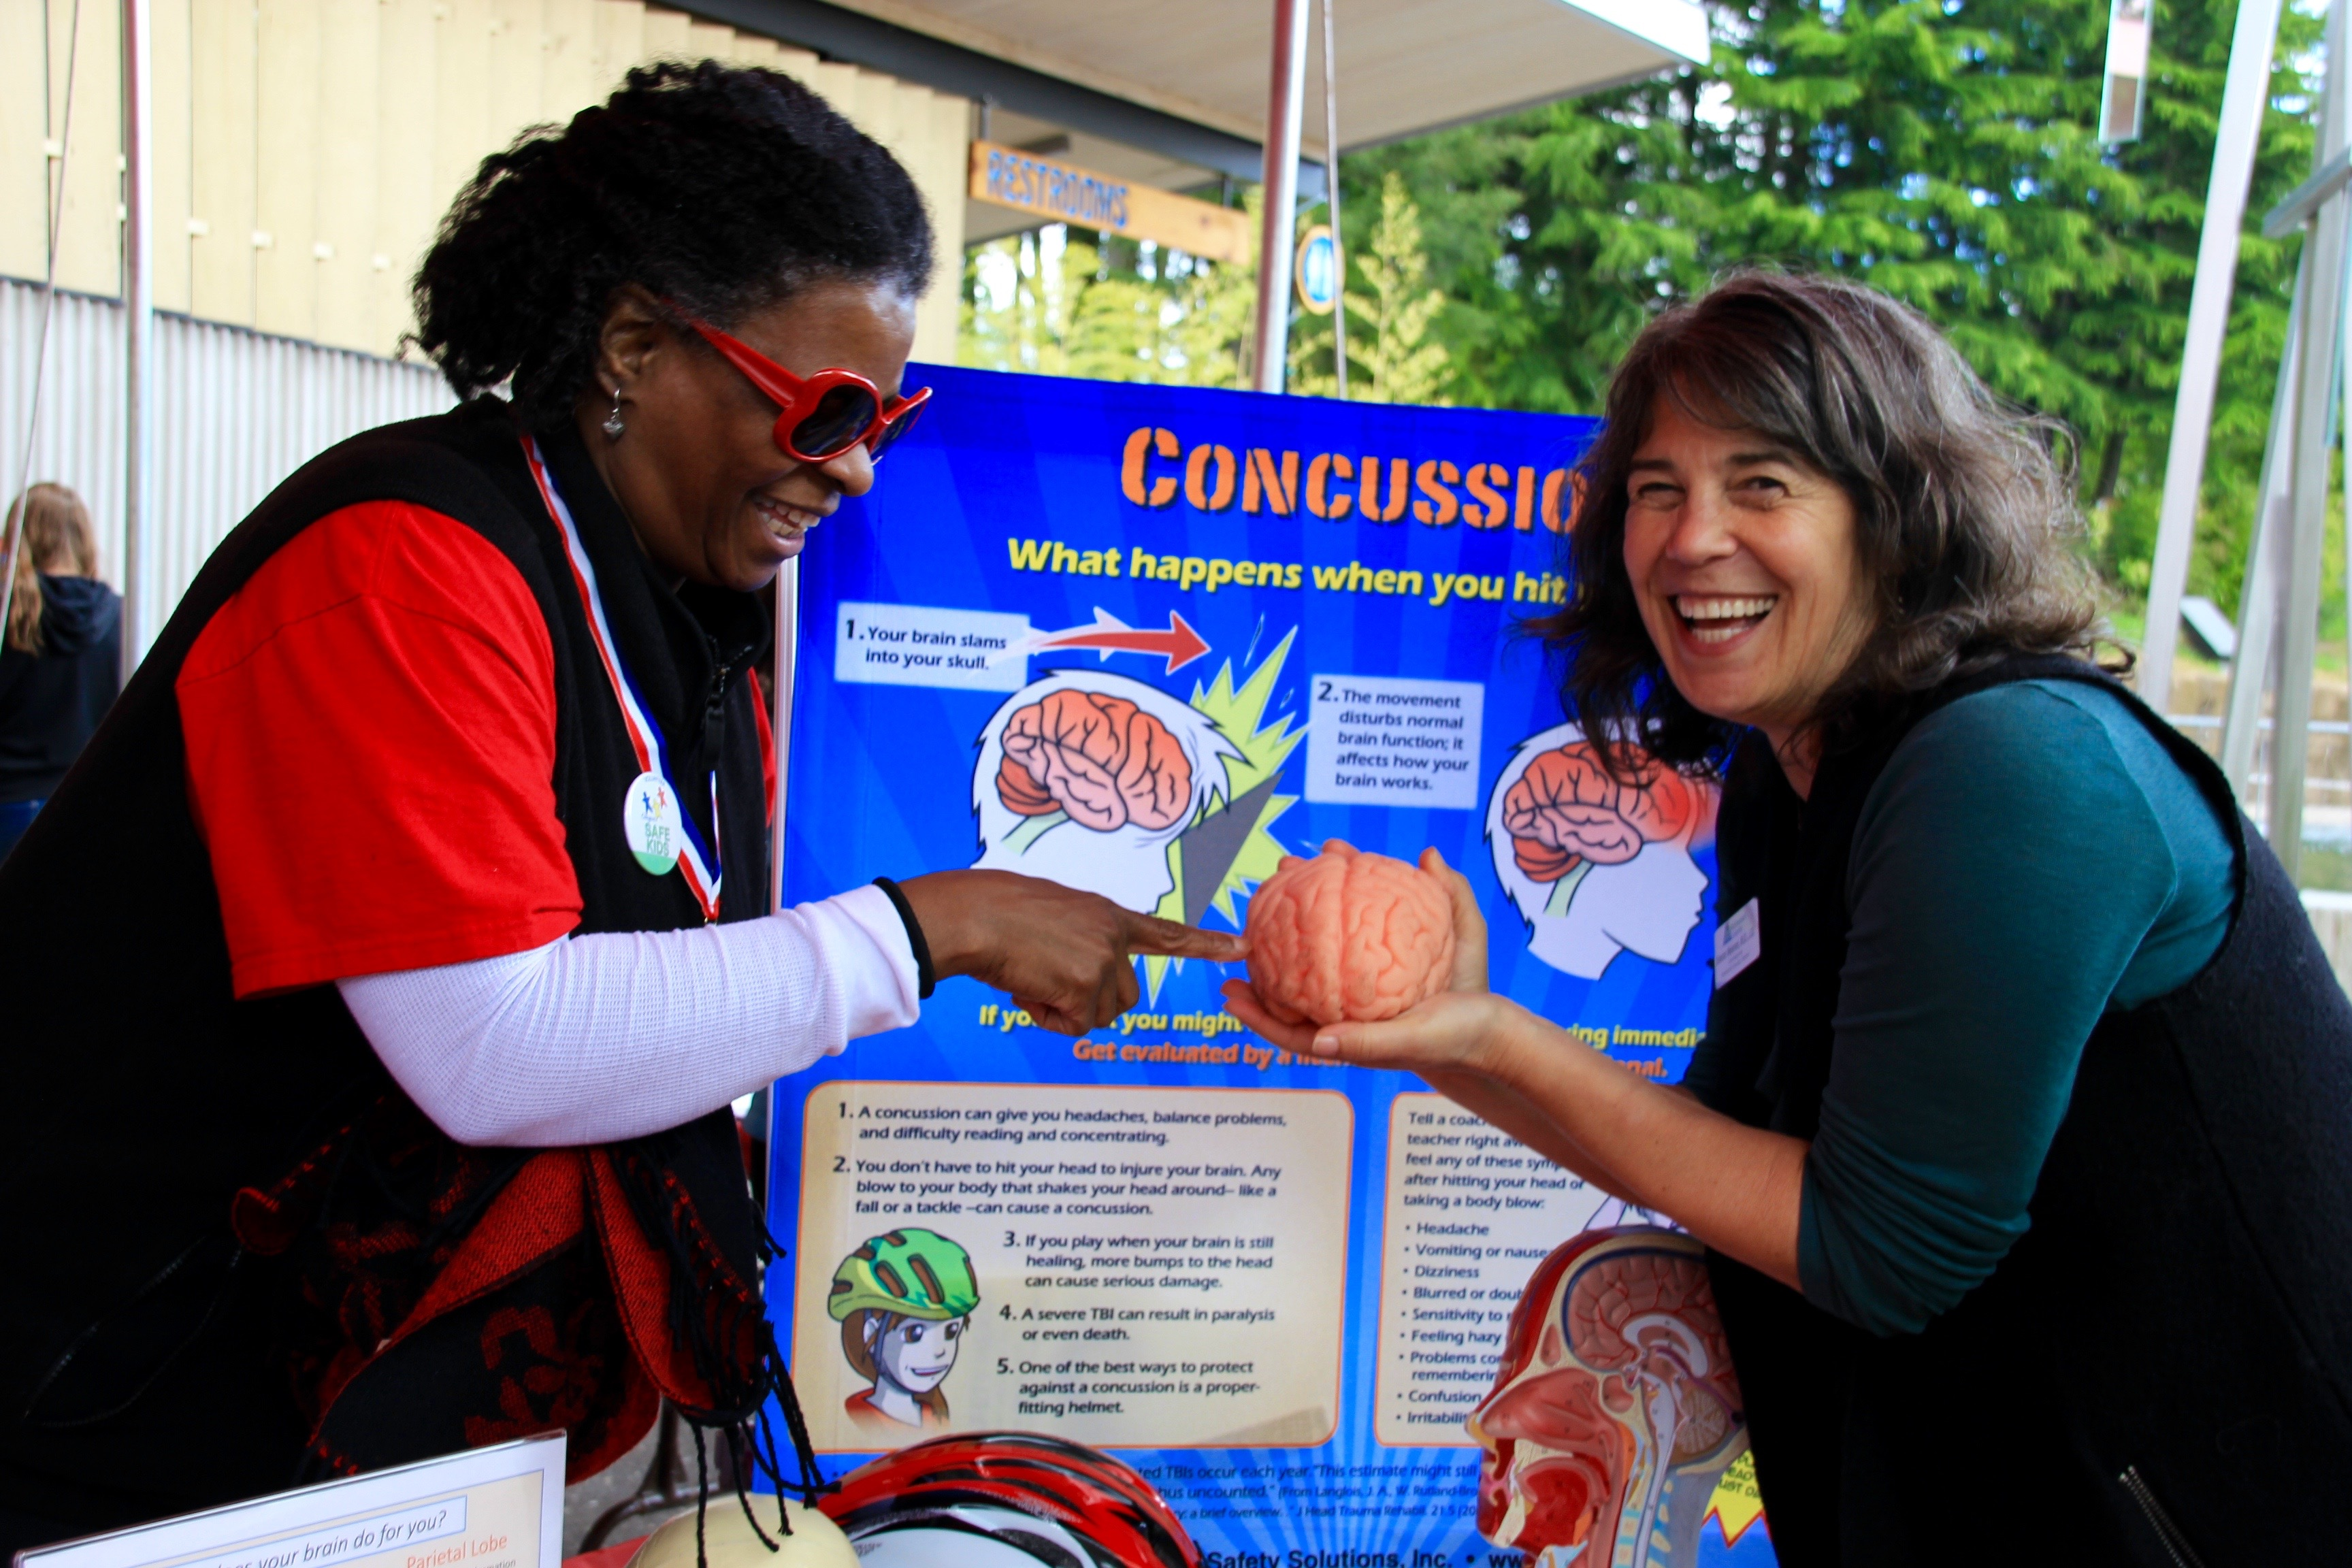 Two ThinkFirst volunteers holding a model brain as part of a concussion information display.